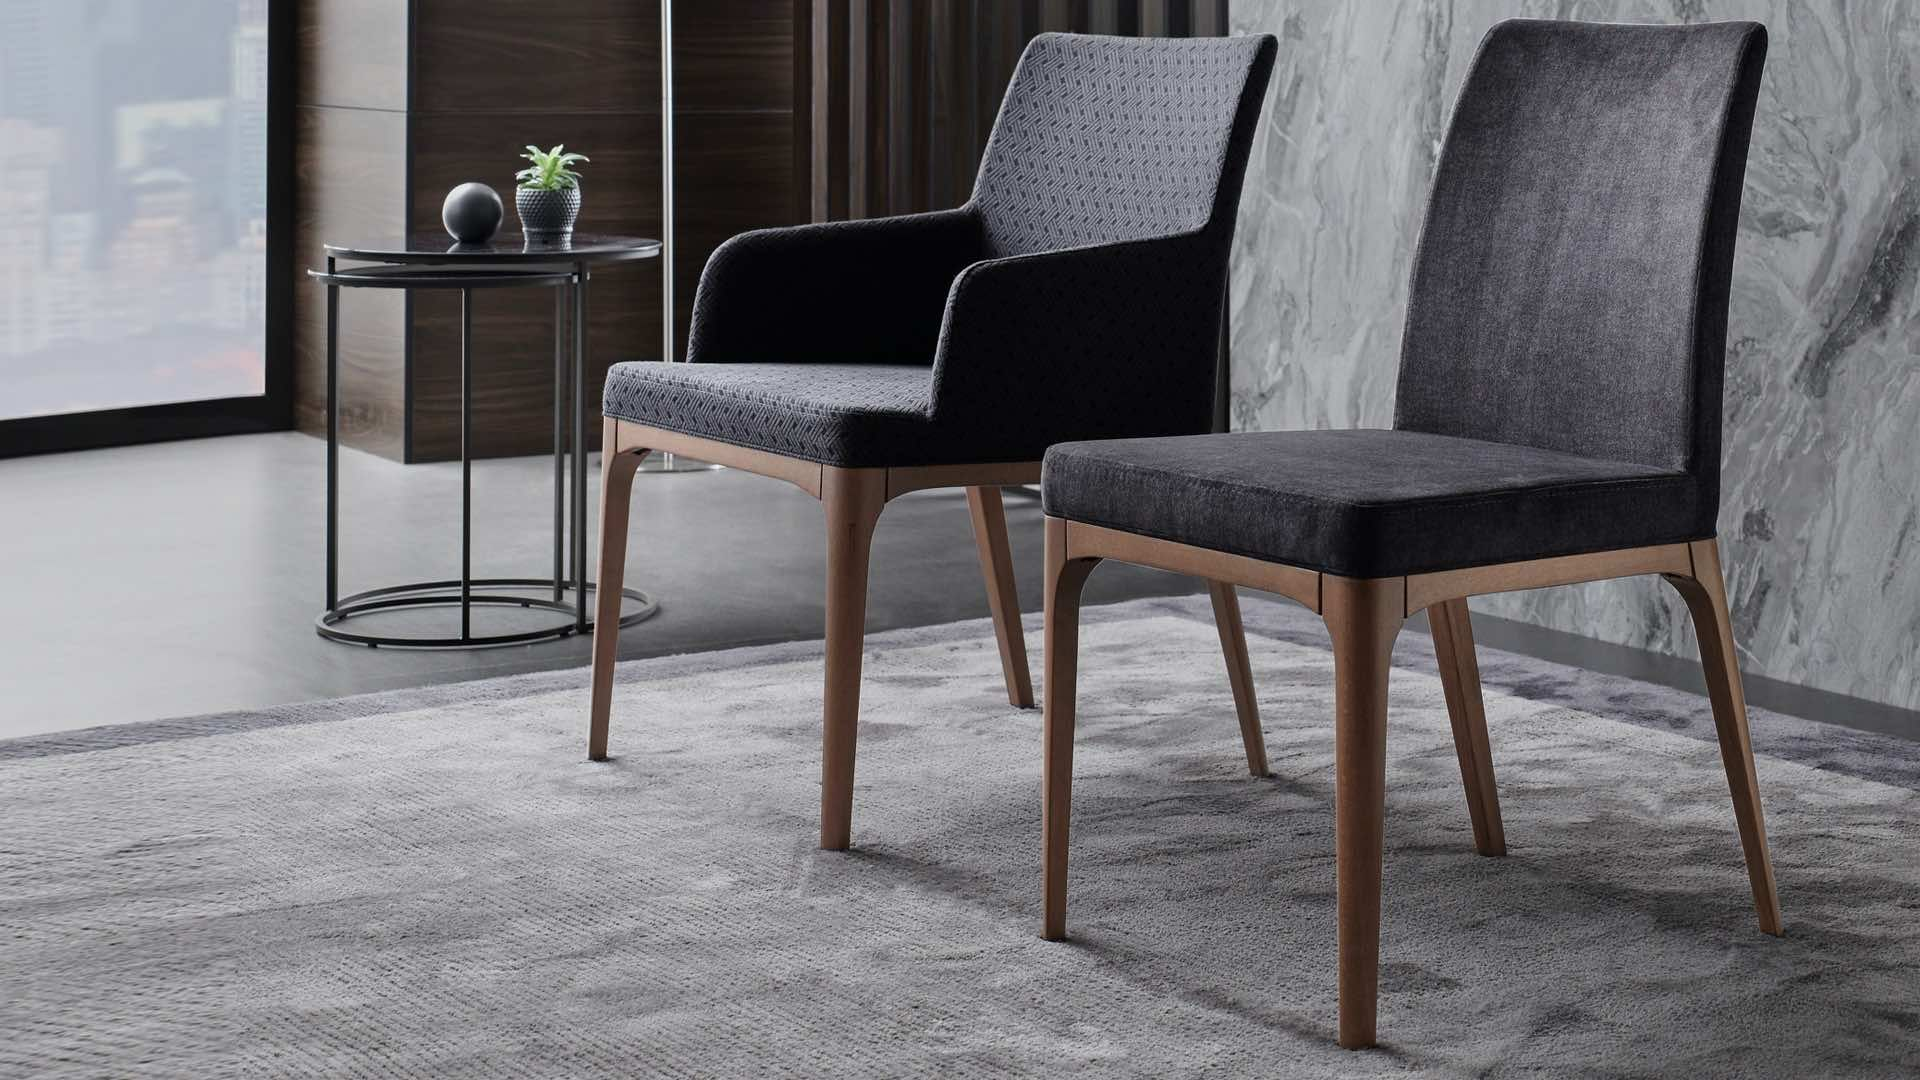 Enriching Its Sitting With Two Alternatives Armada S Narrow Sitting Option Can Be Used As A Chair For Your Dining Tables While Wide Sitting Option Ca In 2020